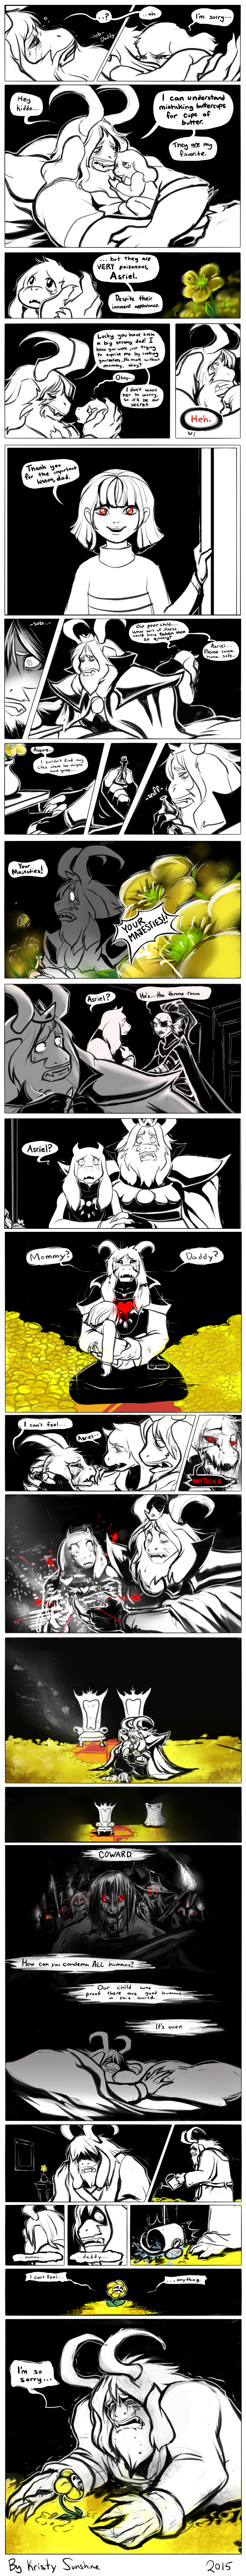 That's rough, buddy (UNDERTALE SPOILERS) by peachiekeenie